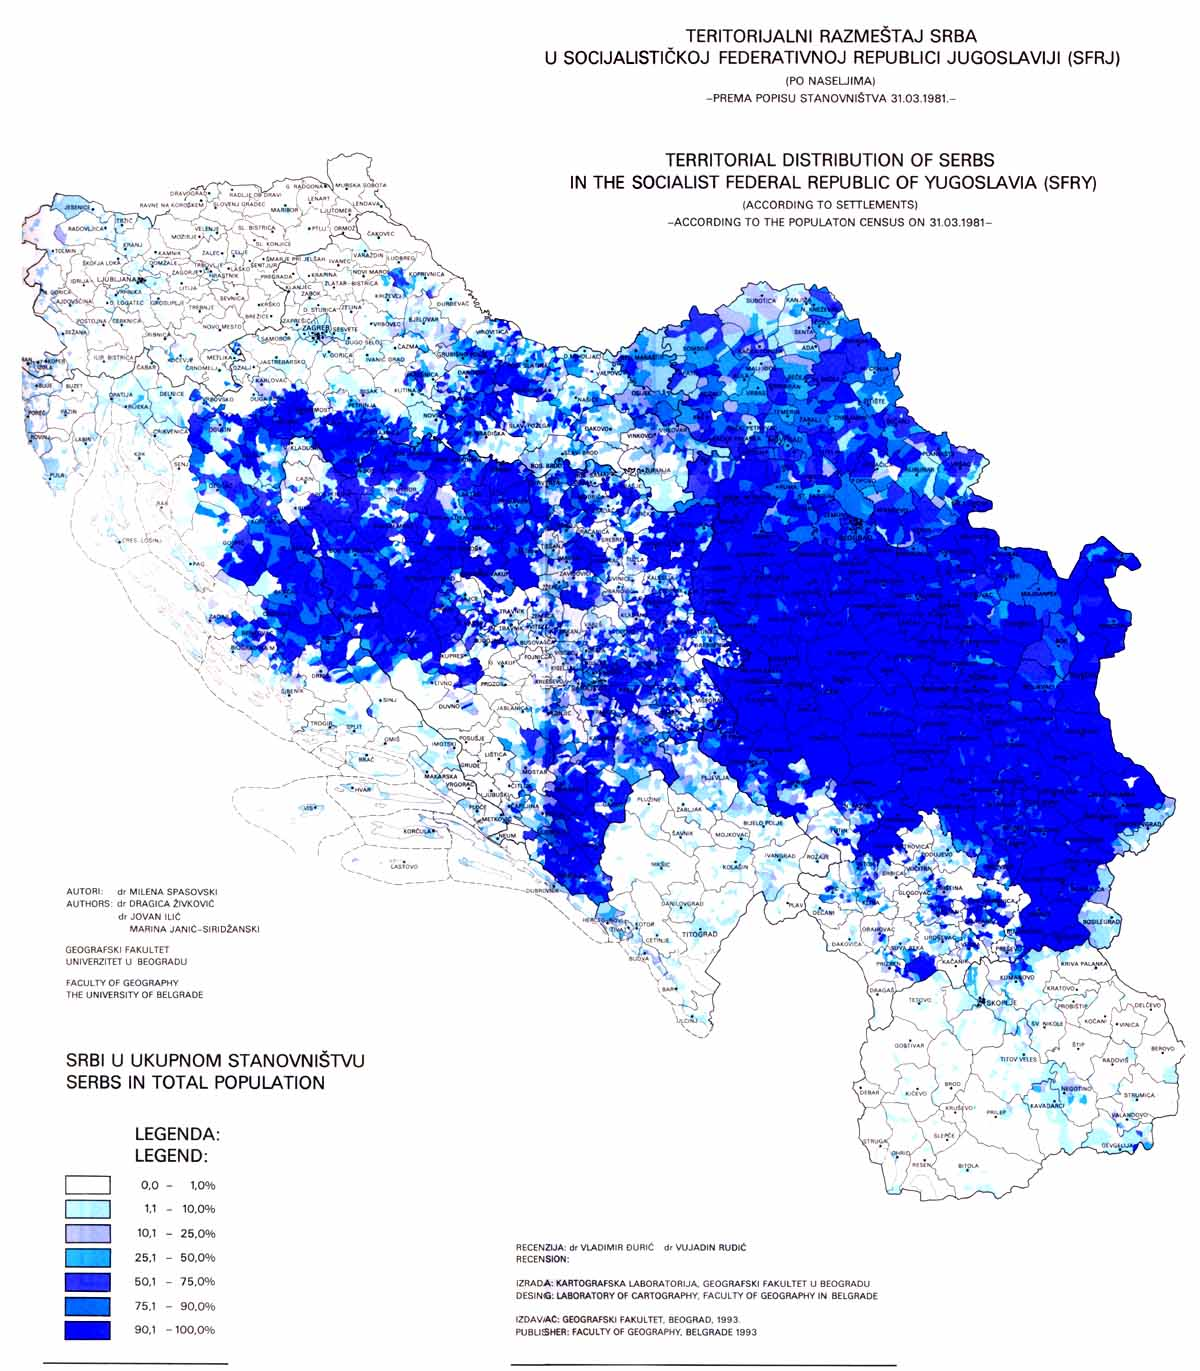 Teritorial Distribution Of Serbs In Socialist Federal Republic Yugoslavia According To Settlements The Population Census On March 31 1981